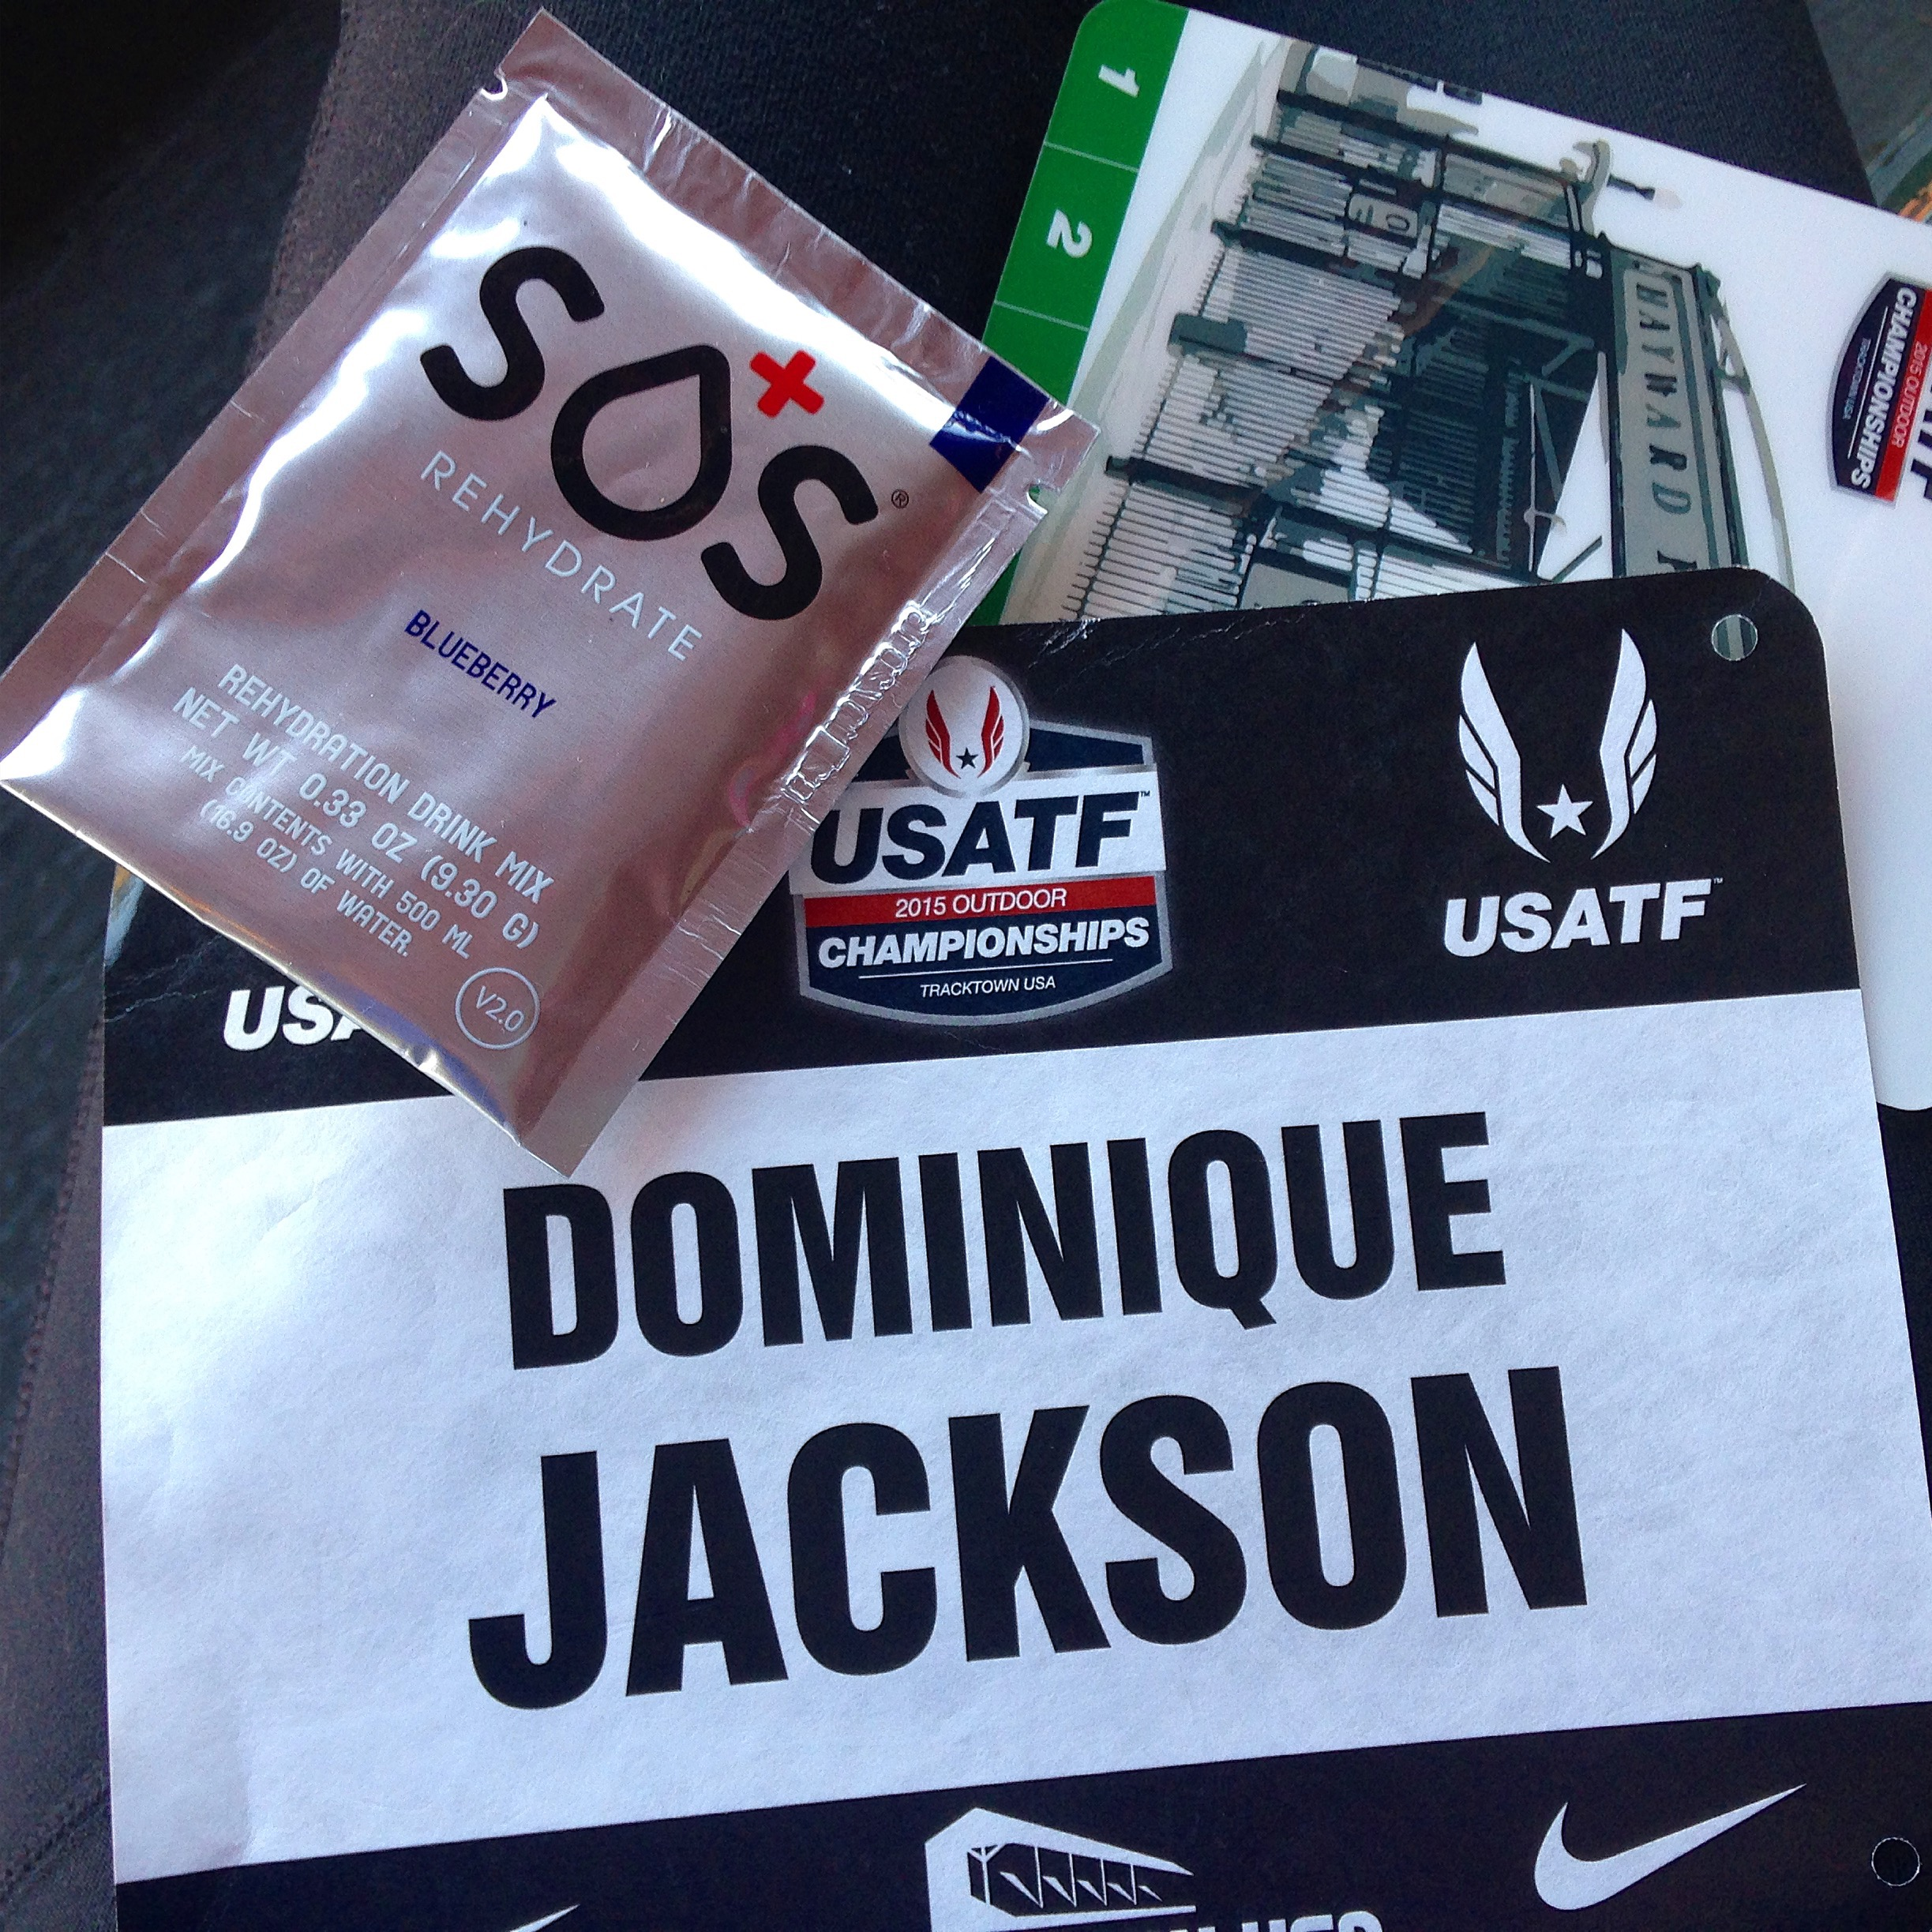 Competing at USA's another year. Feeling truly Blessed.